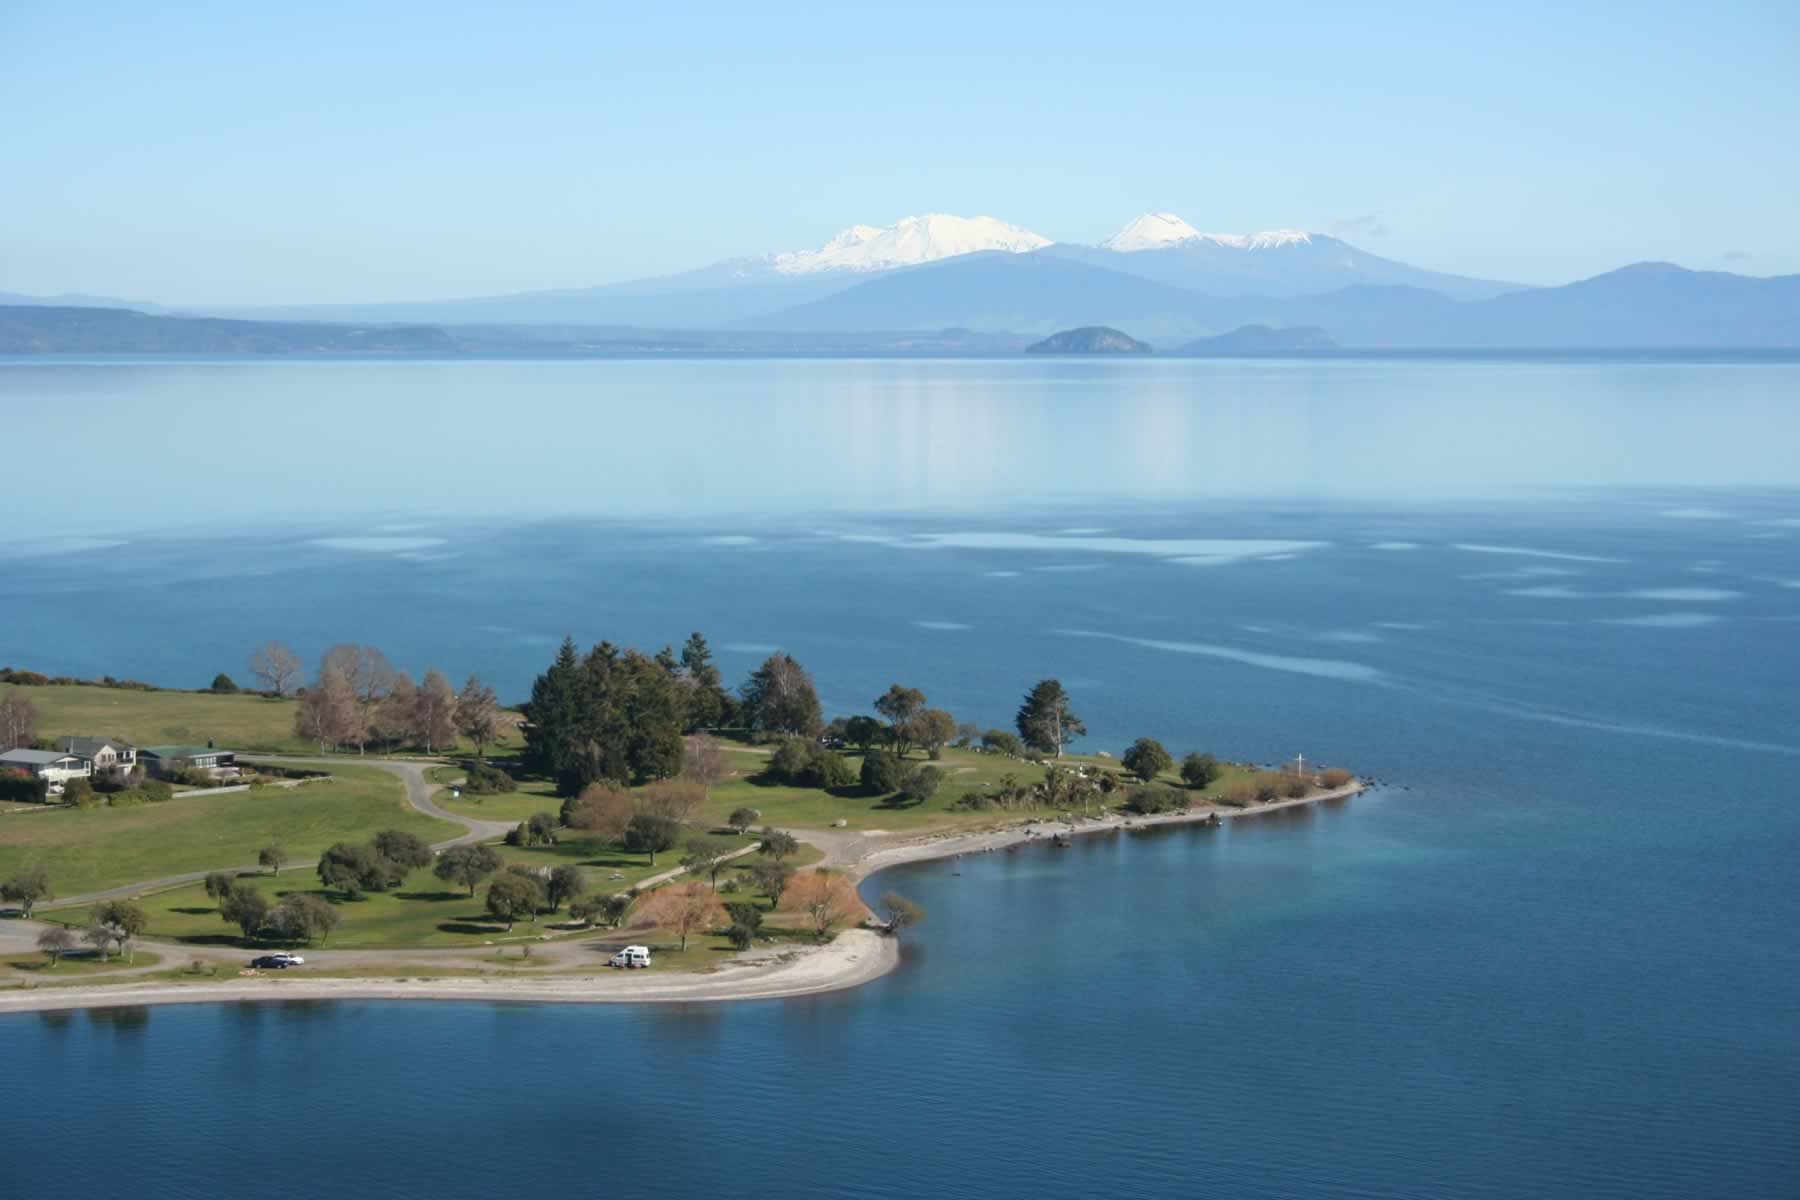 Lake-Taupo-town-looking-south-over-Wharewaka-Point-with-mountains-in-winter.CEXVsg